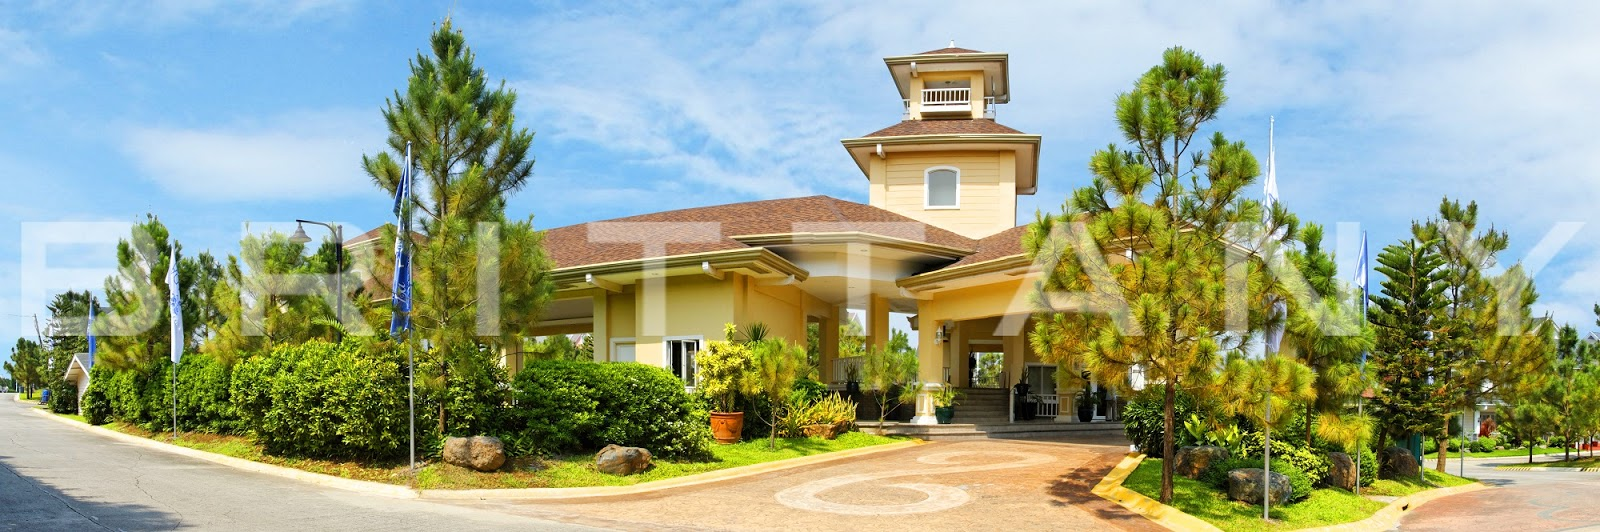 Affordable property listing of the philippines la posada for Affordable lakefront homes